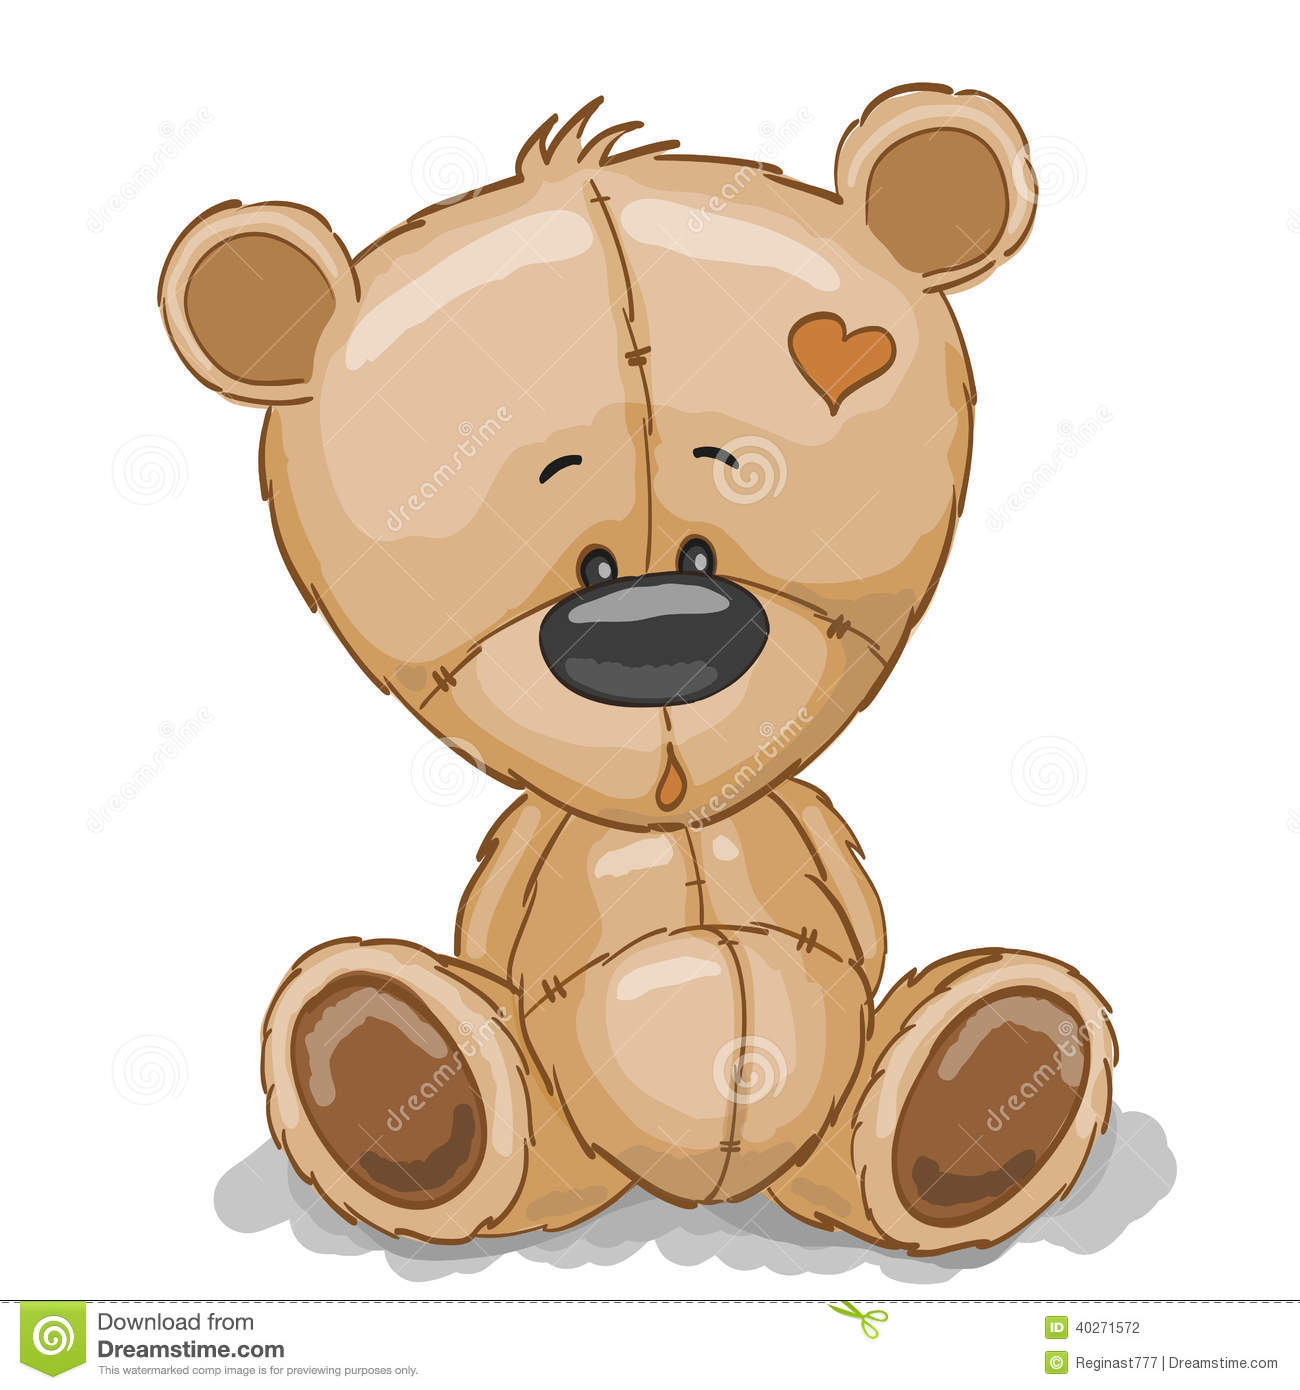 Nounours de dessin illustration de vecteur illustration du illustration 40271572 - Dessins de nounours ...